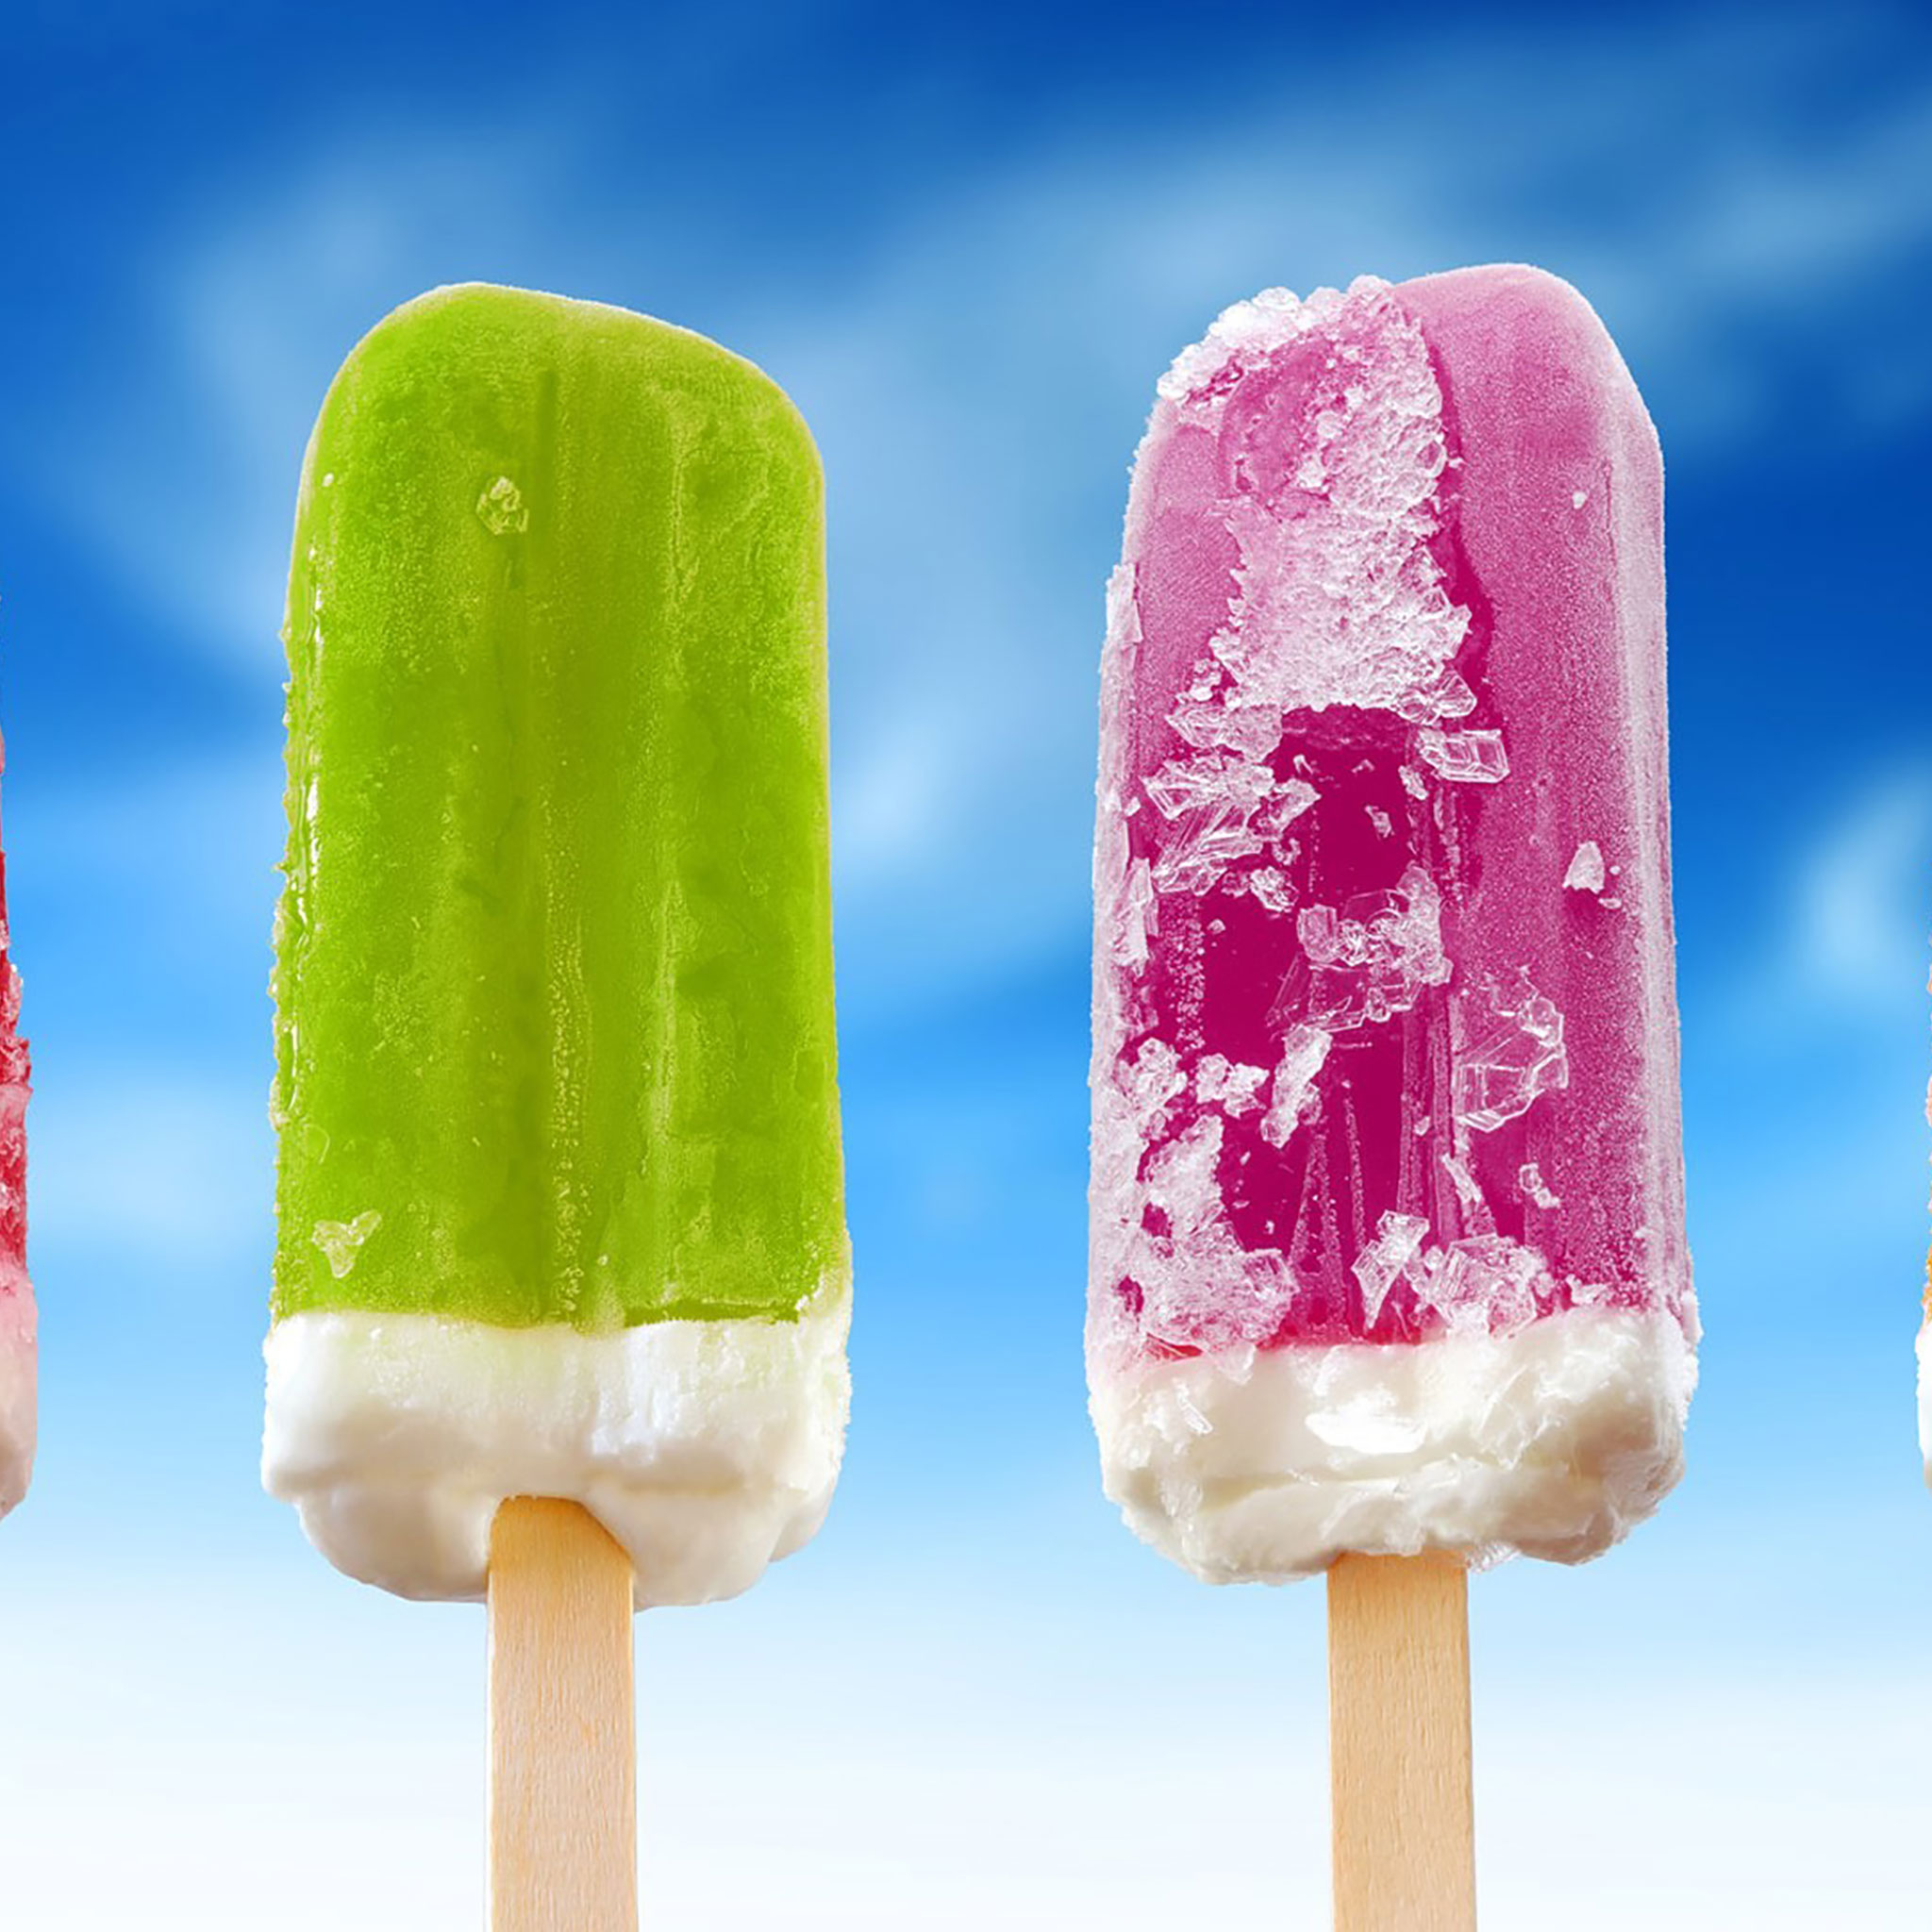 25 Summer Ipad Wallpapers on cartoon ice pops